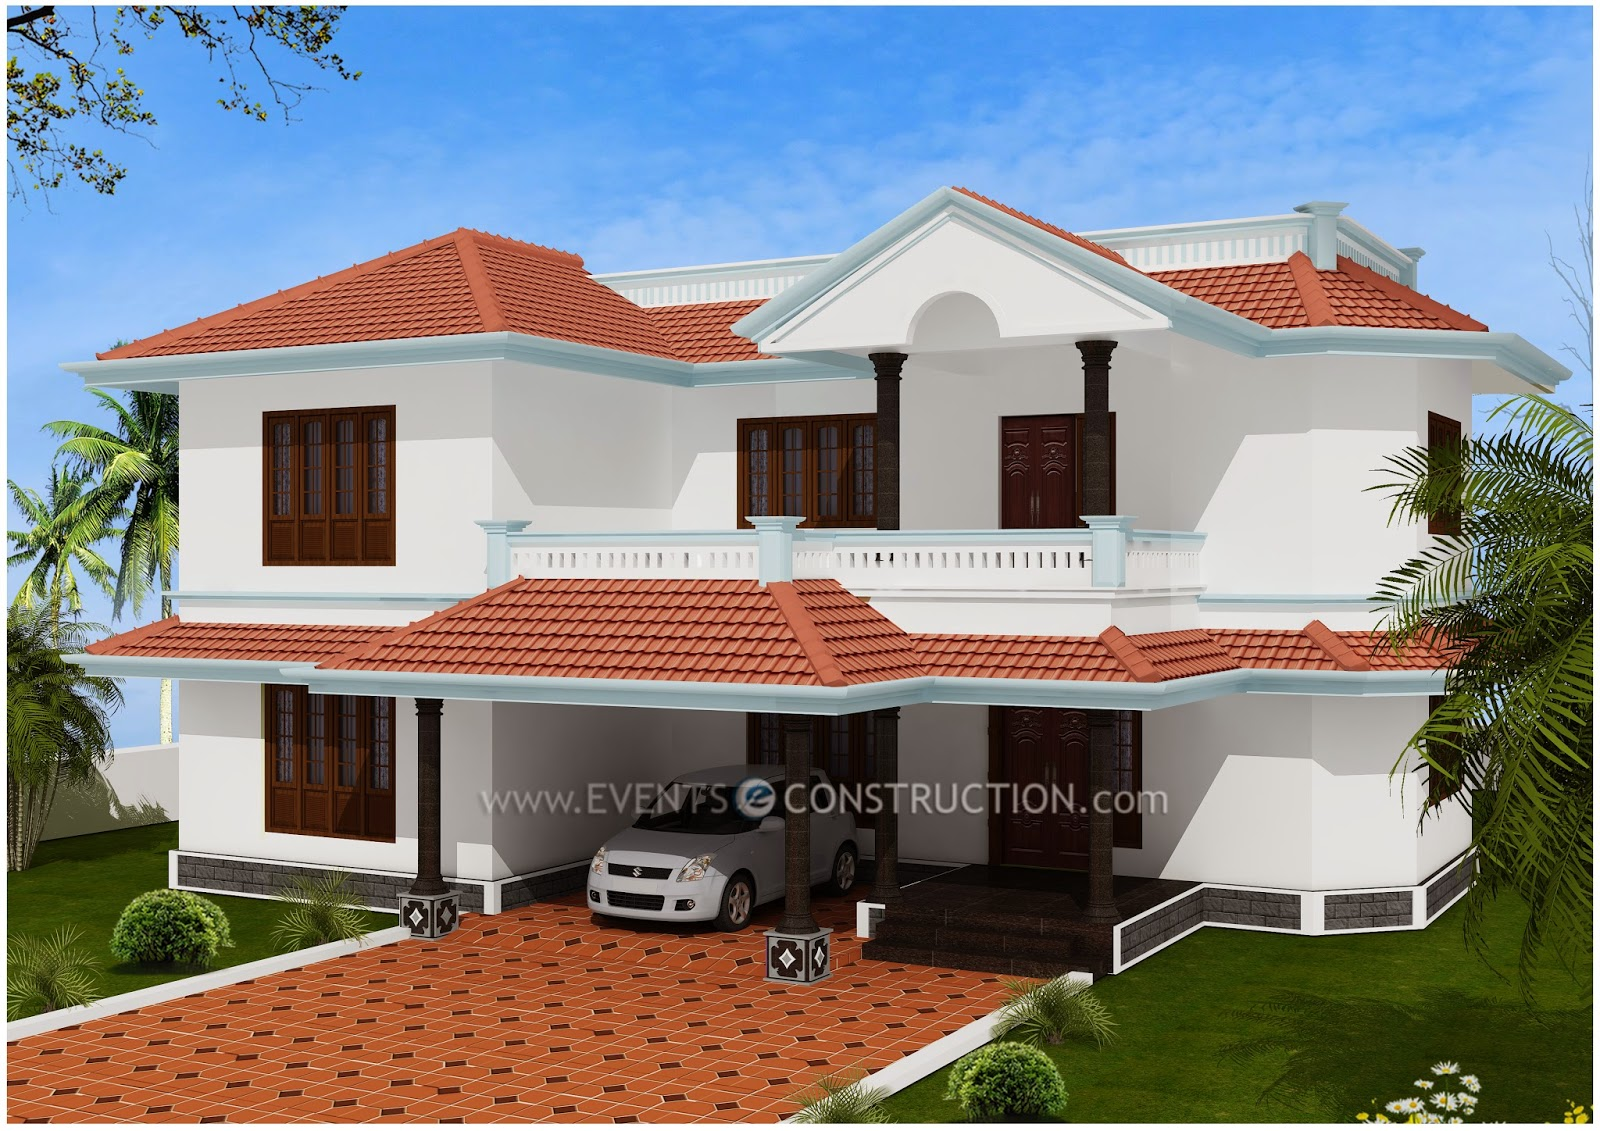 Evens construction pvt ltd simple kerala house design for Home designs ltd